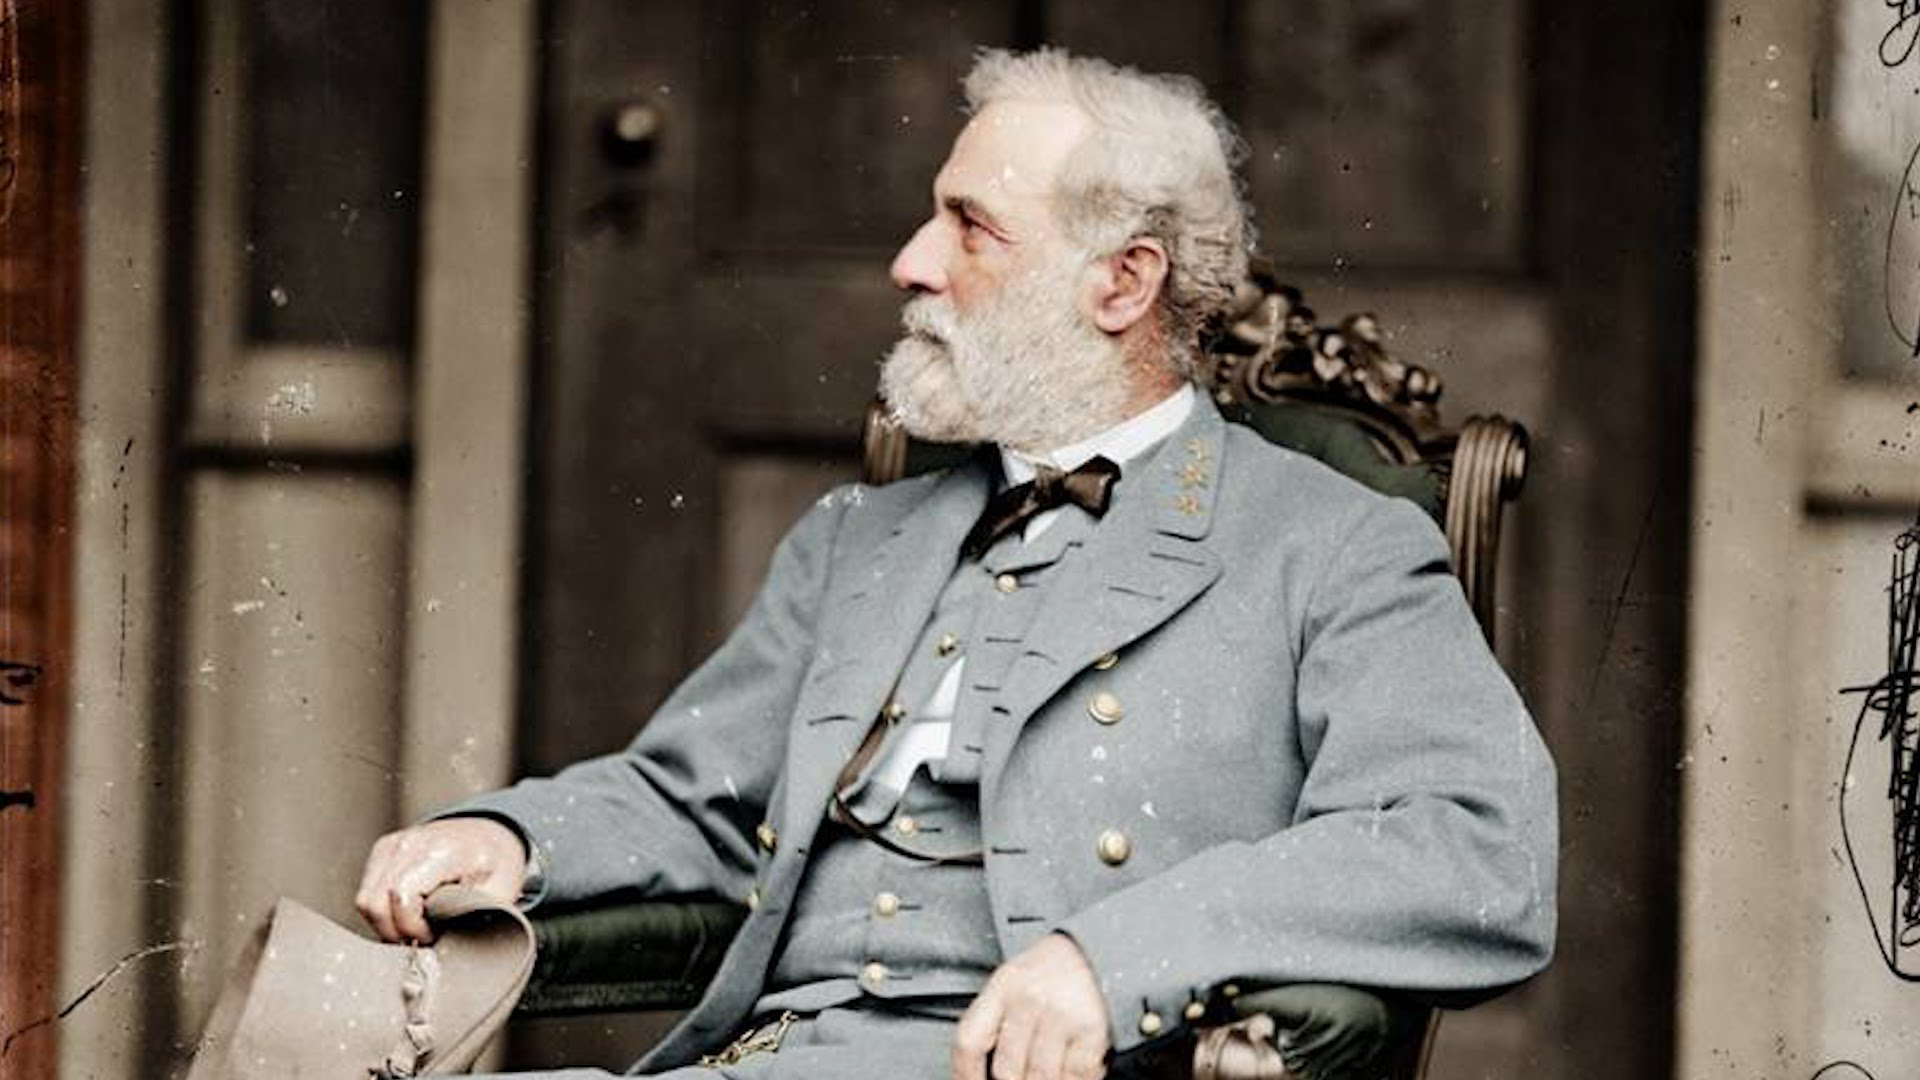 a biography of robert edward lee an american civil war general Biography of general robert e lee virginia, robert edward lee seemed destined for military greatness on the battlefields of the civil war.